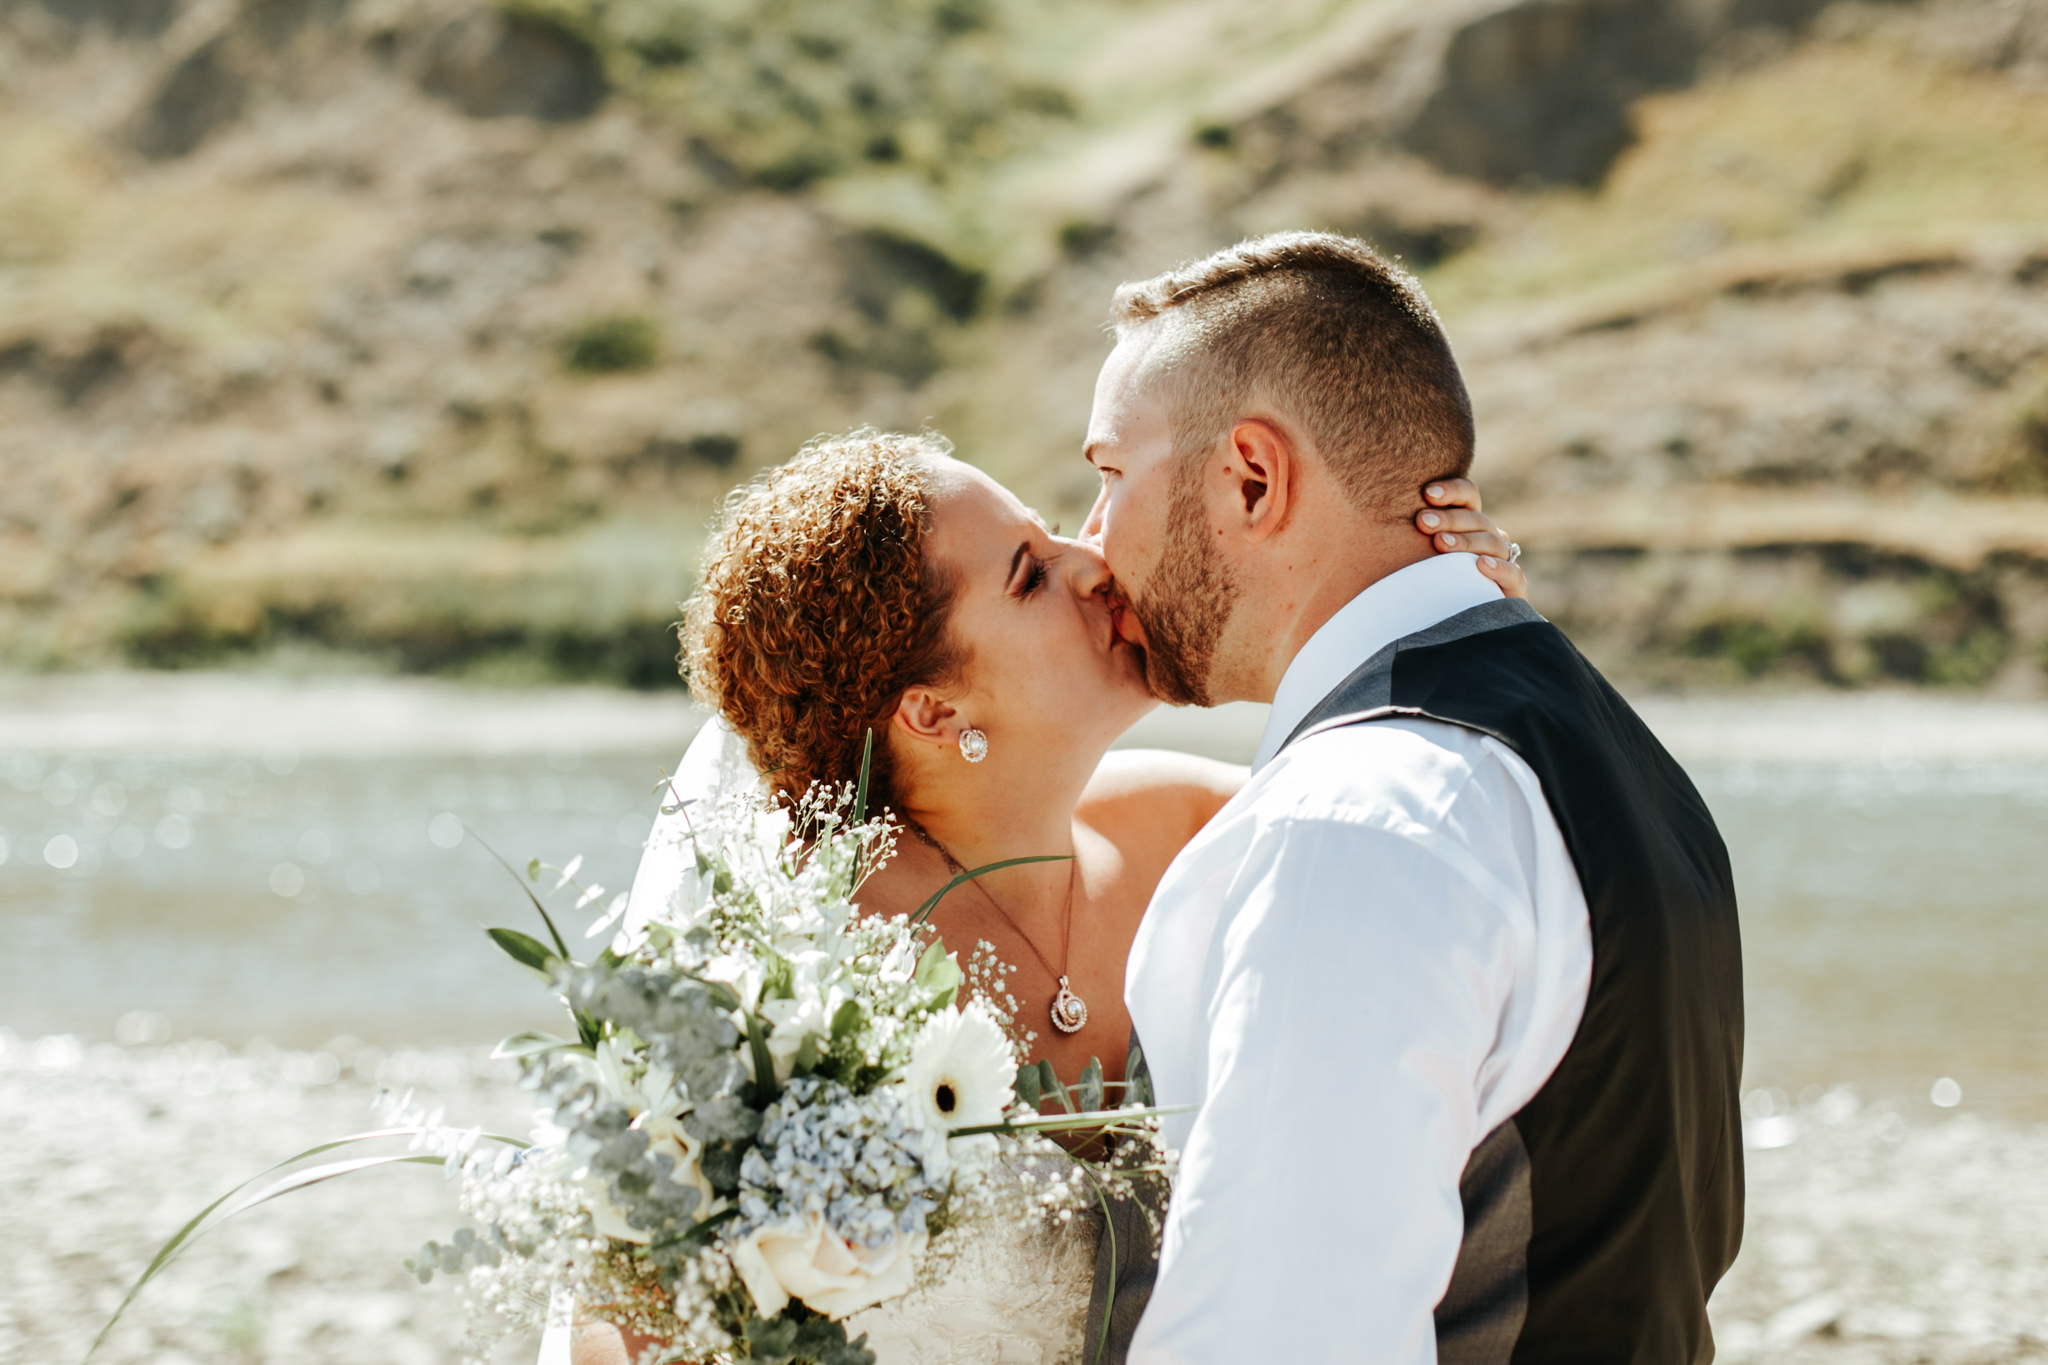 lethbridge-wedding-photographer-love-and-be-loved-photography-trent-danielle-galt-reception-picture-image-photo-129.jpg